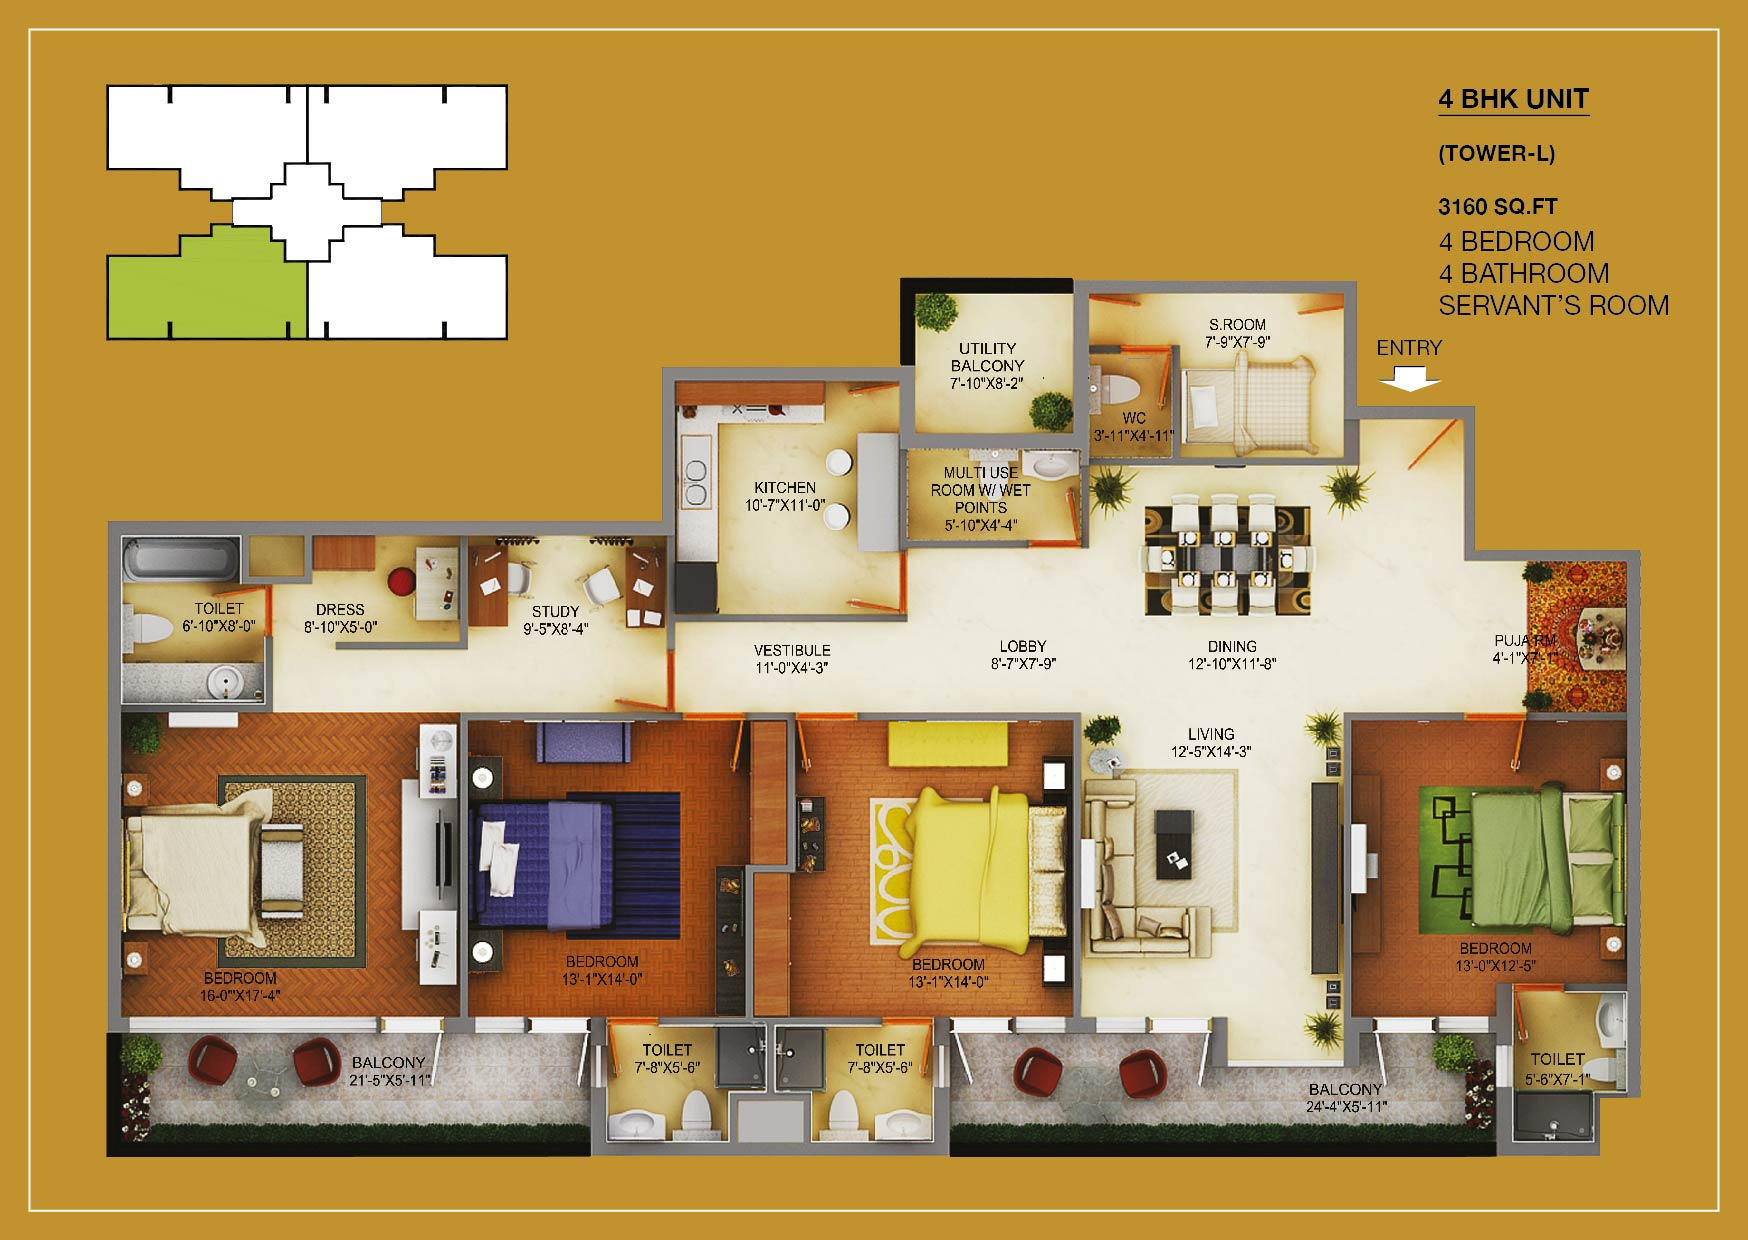 4BHK+S LAYOUT PLAN - 3160 SQ.FT.